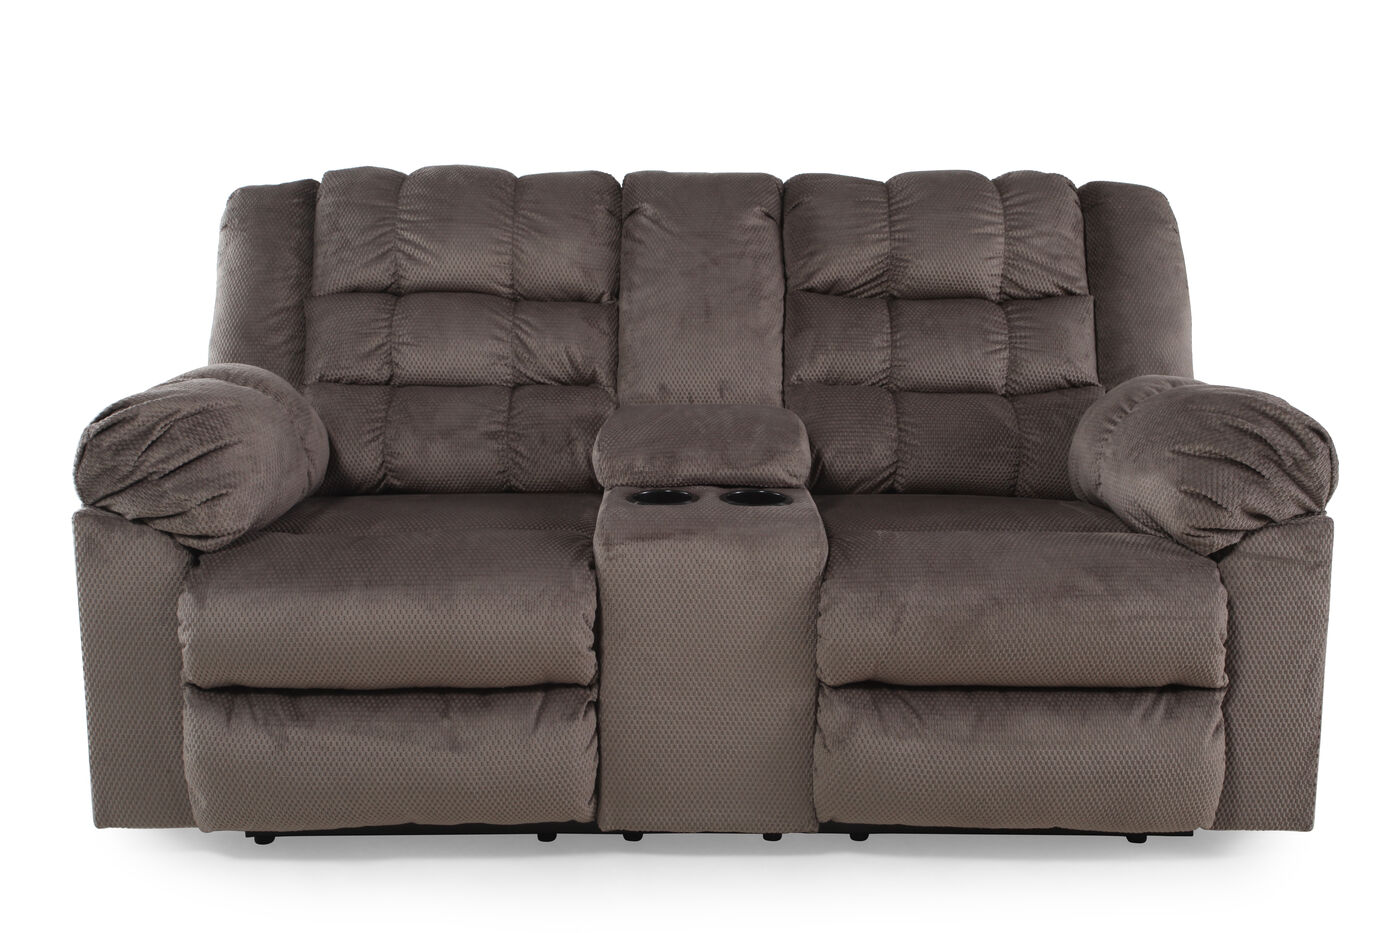 Reclining Rustic Farmhouse 76 Loveseat With Console In Charcoal Mathis Brothers Furniture